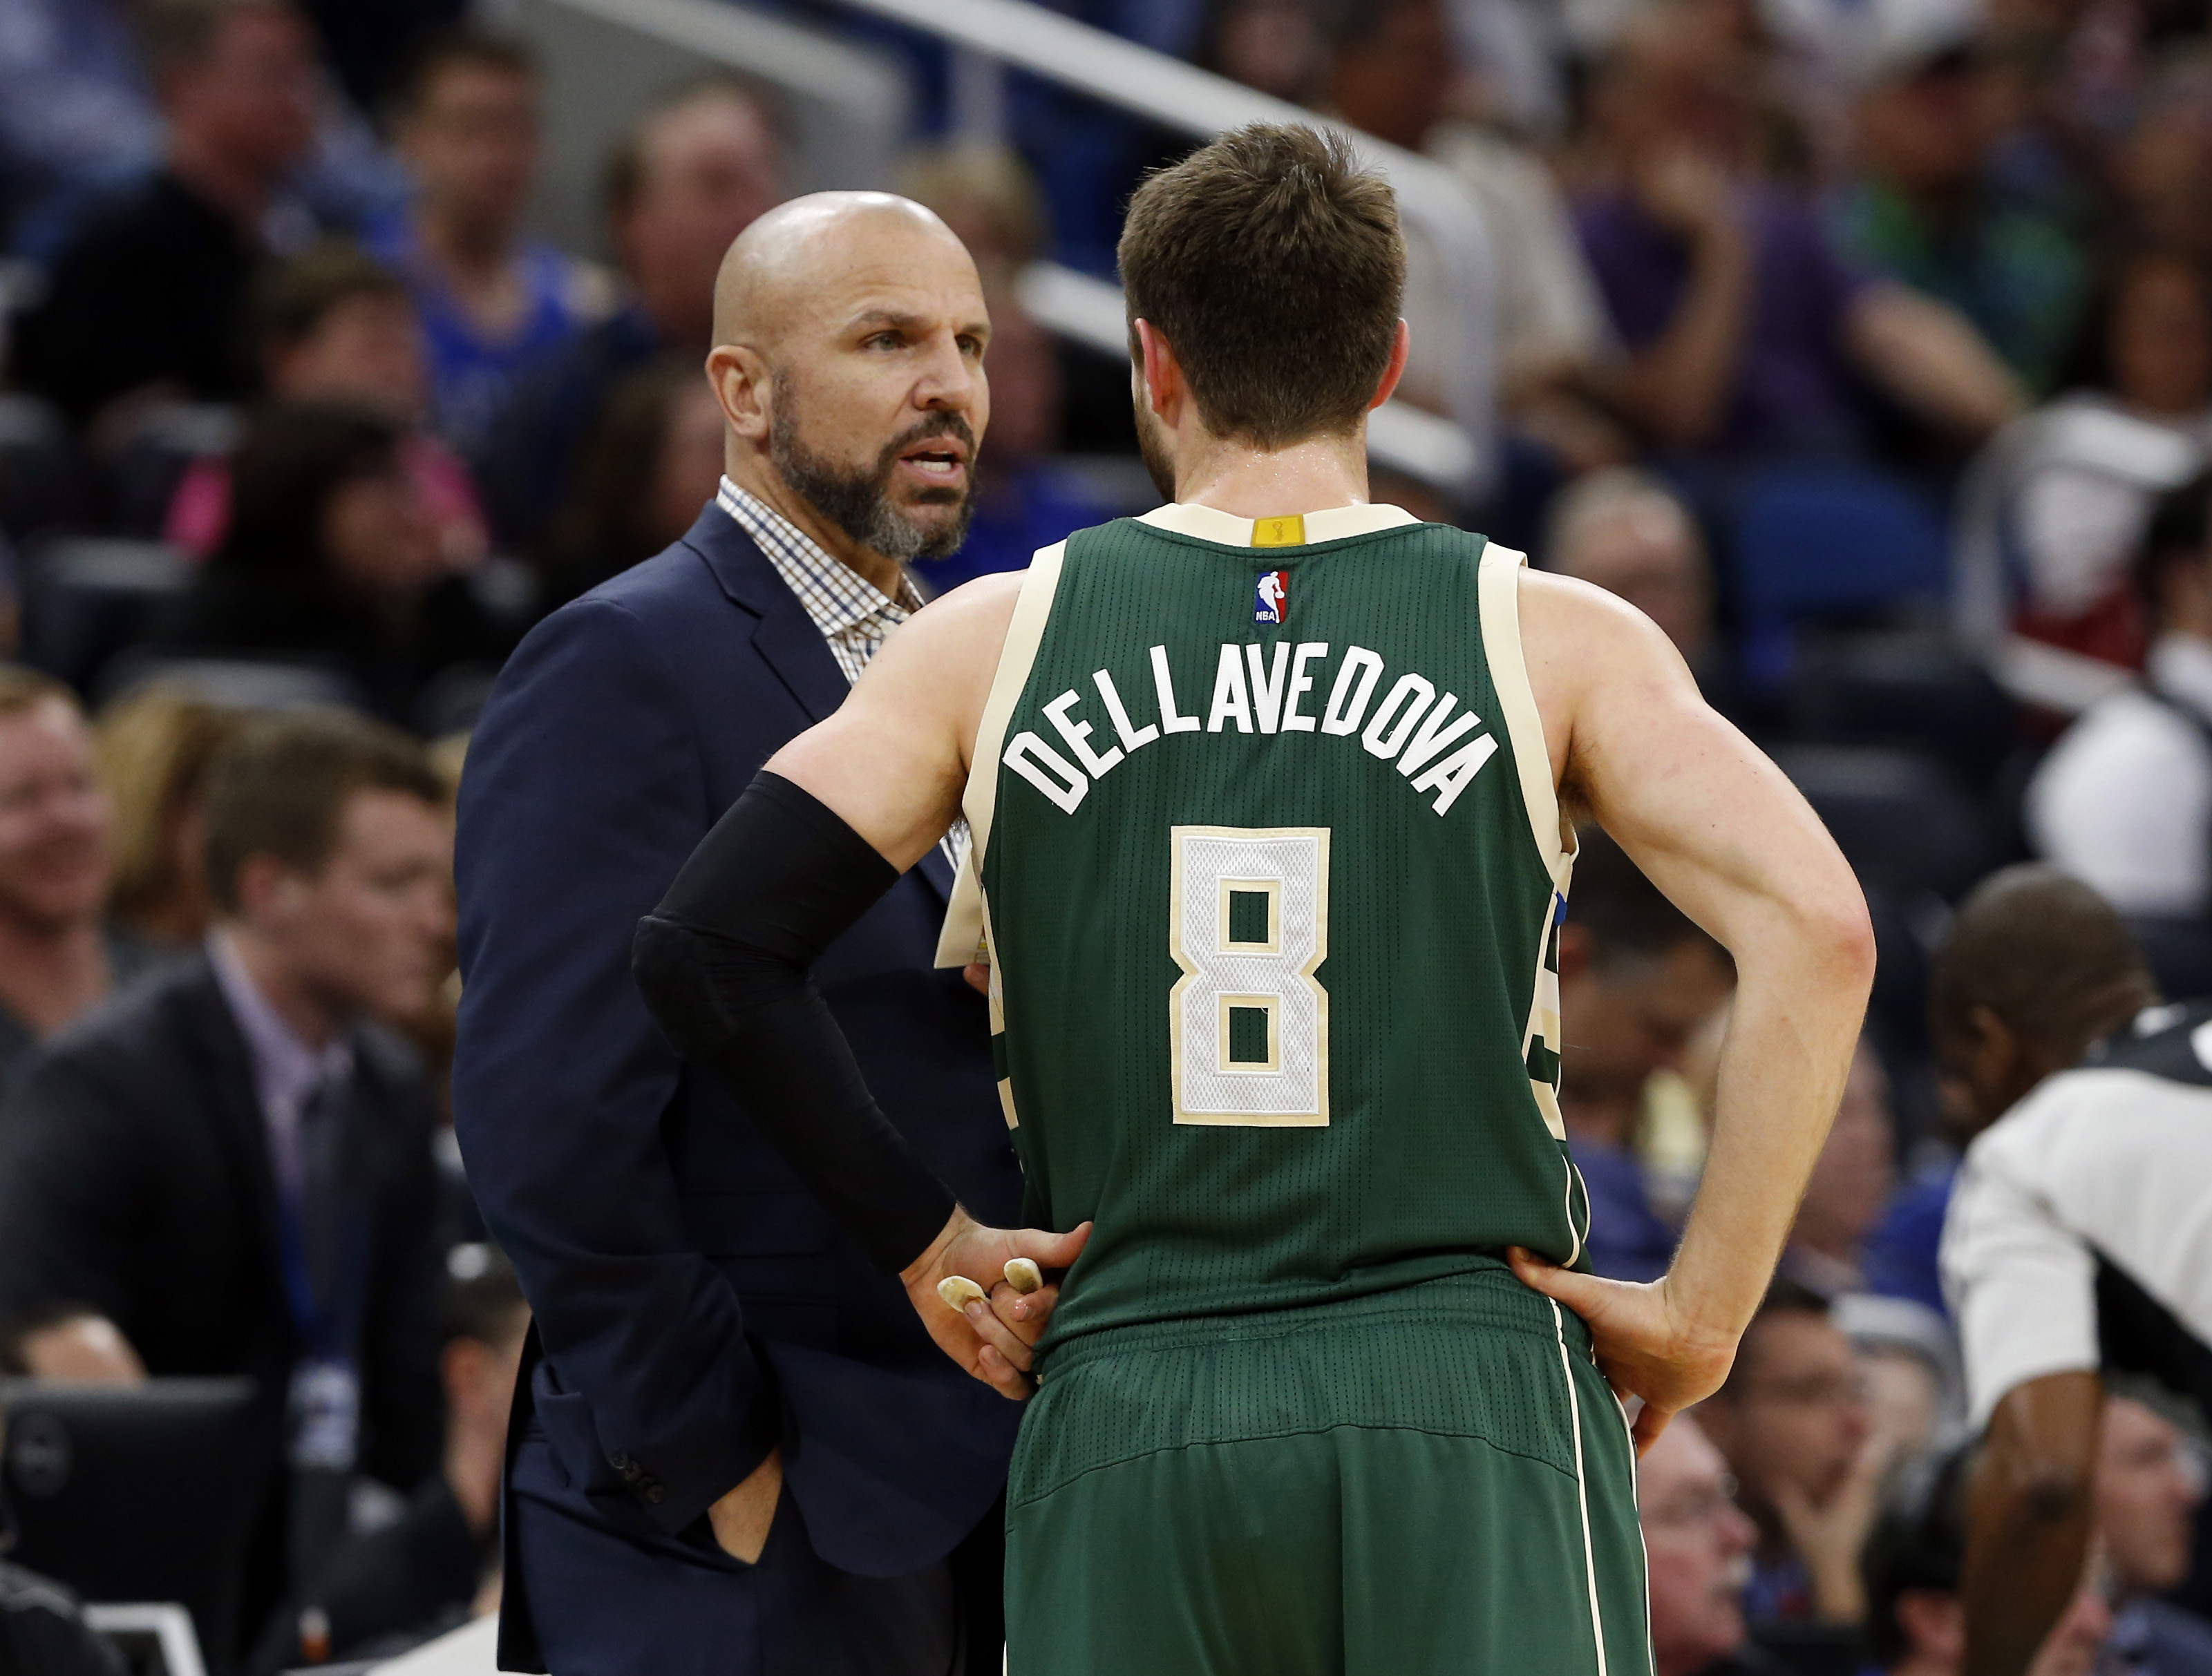 Jan 20, 2017; Orlando, FL, USA; Milwaukee Bucks head coach Jason Kidd talks with guard Matthew Dellavedova (8) against the Orlando Magic during the first half at Amway Center. Mandatory Credit: Kim Klement-USA TODAY Sports